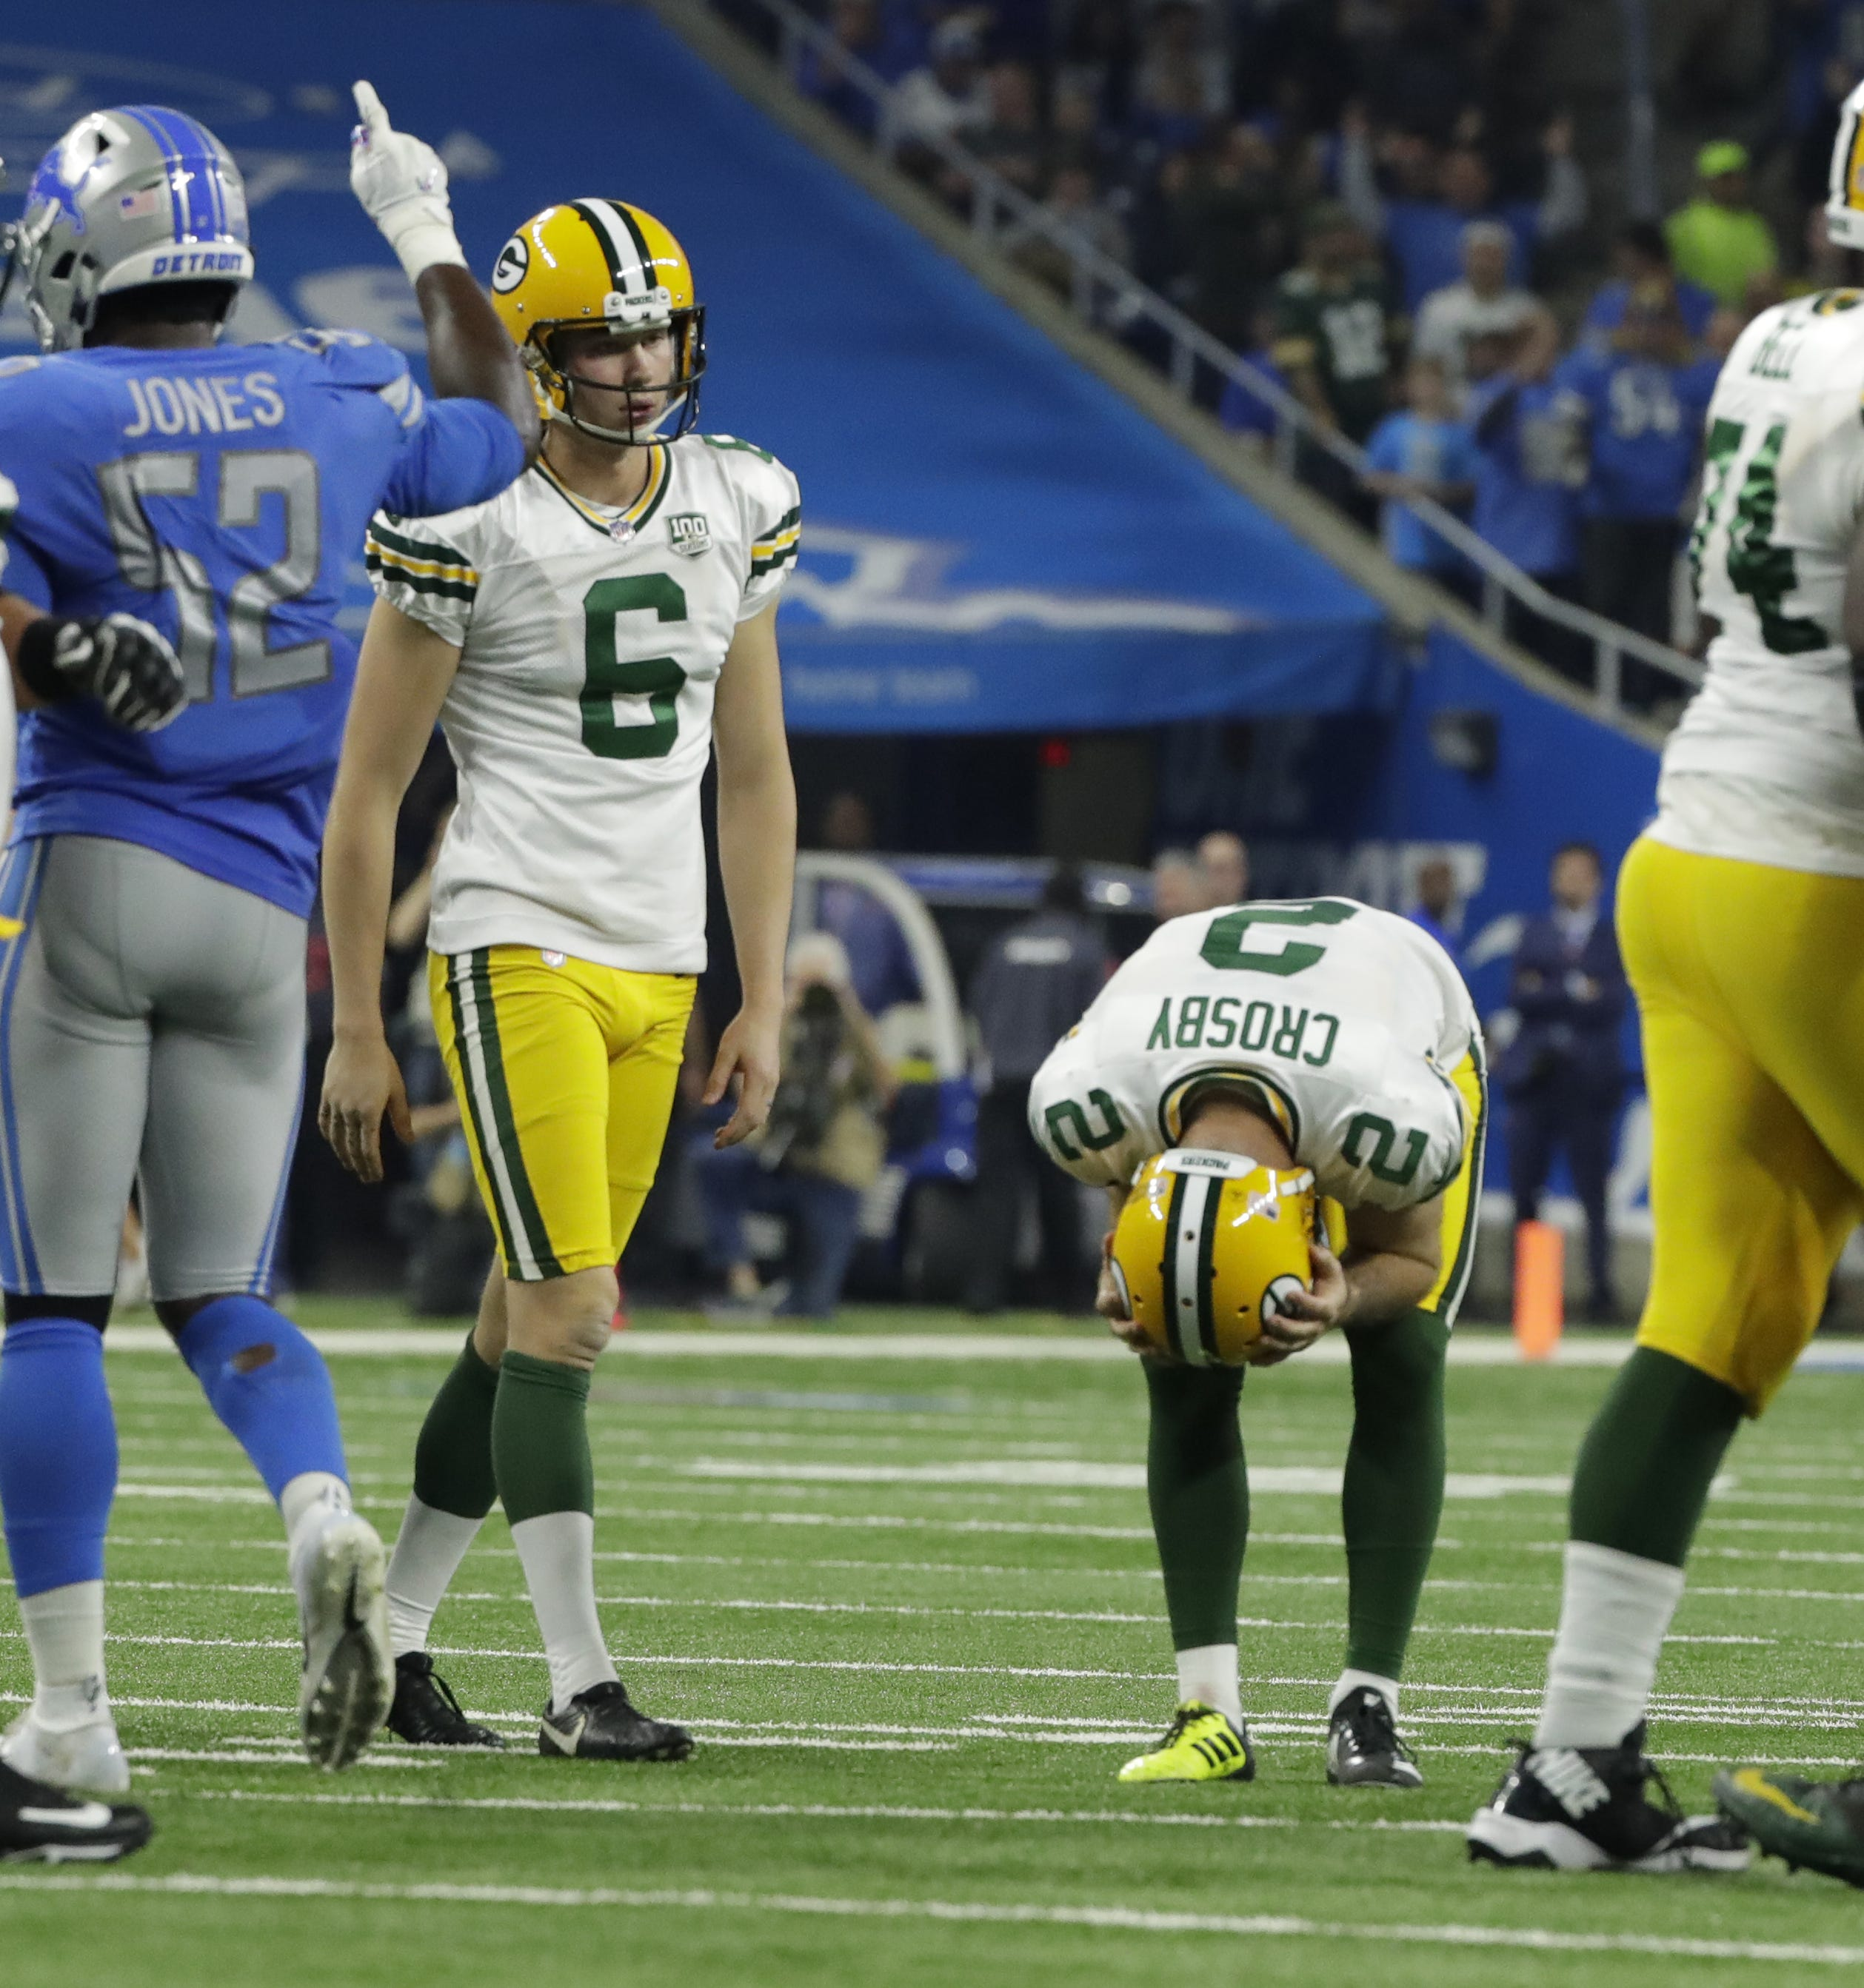 Packers kicker Mason Crosby's 'anomaly in life' leads to five misses in loss to Lions